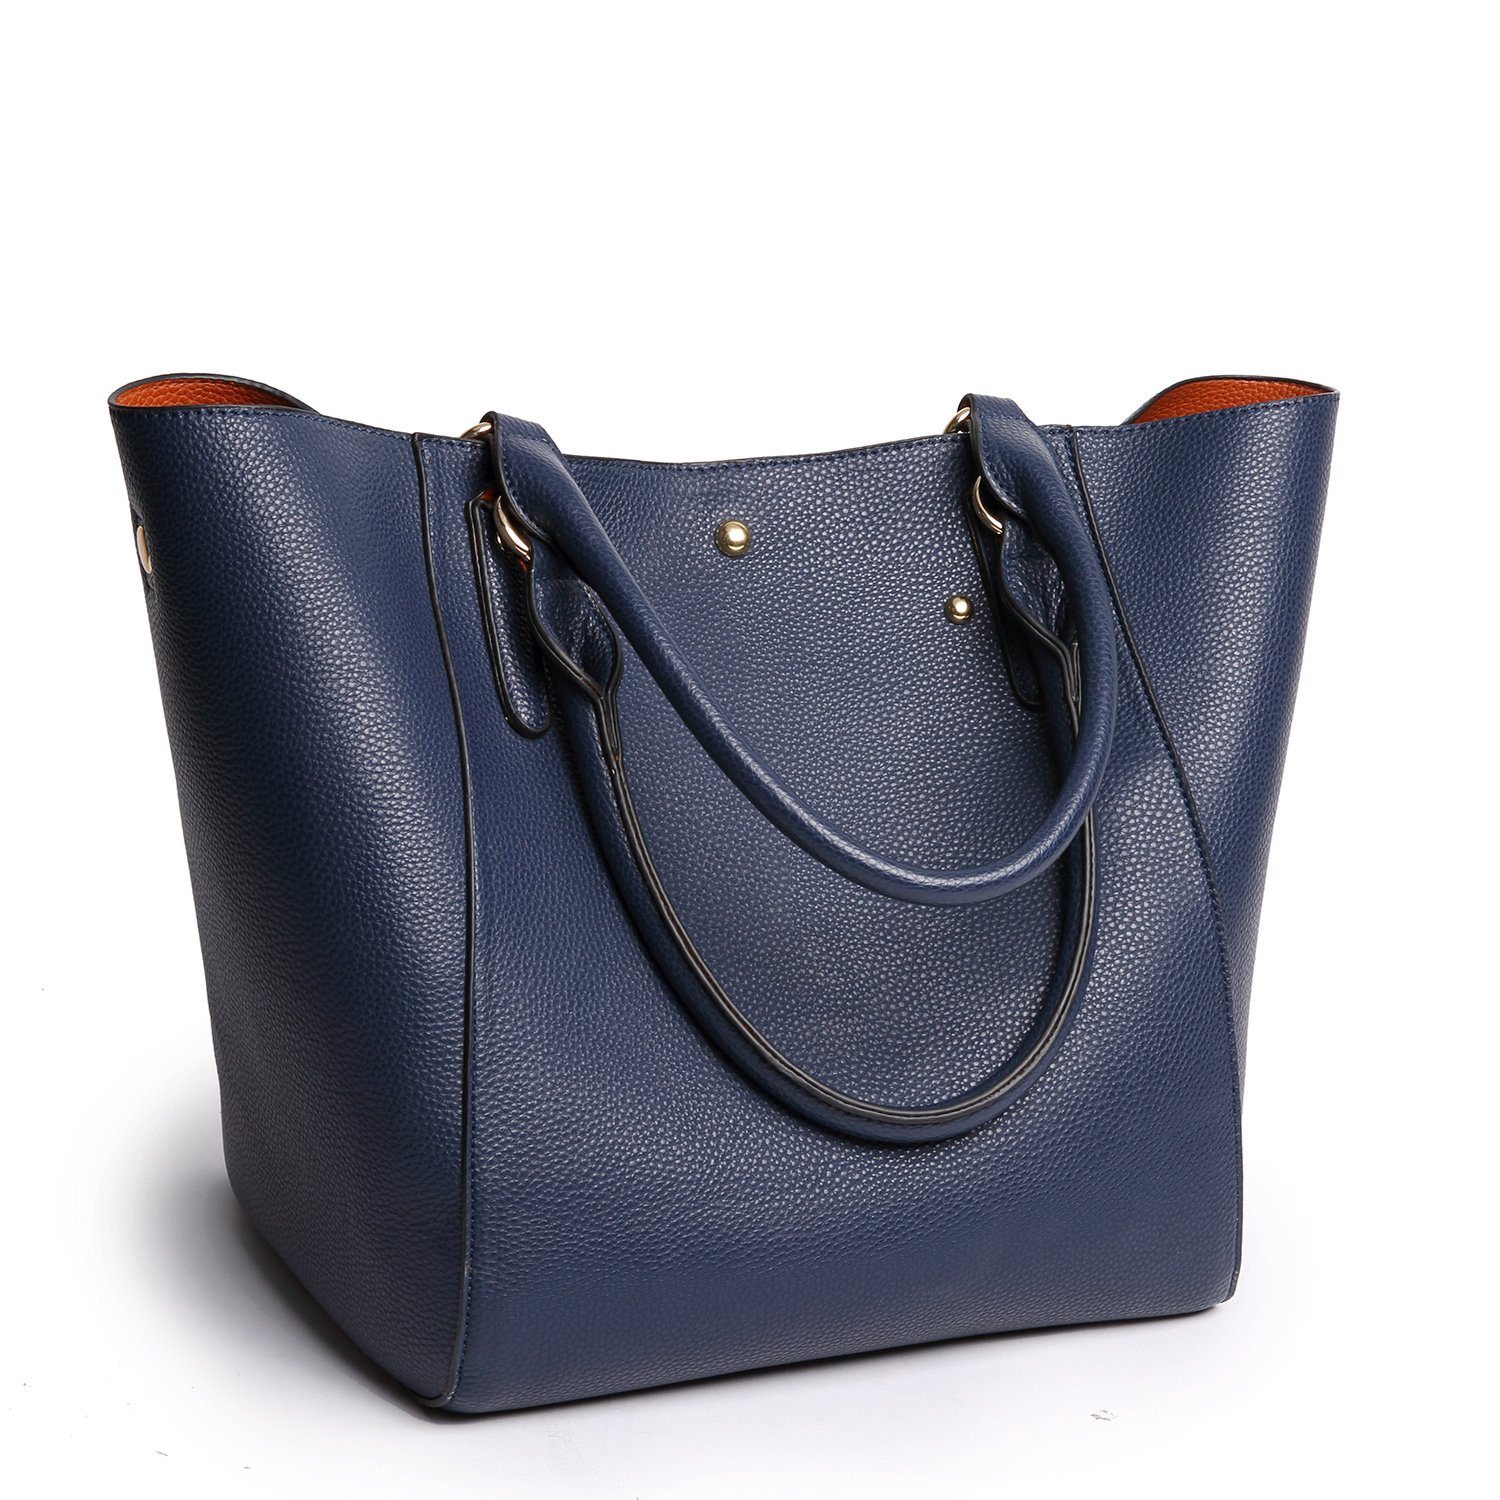 Tibes Large Women Top-Handle Handbag Pu Leather Tote Bag Satchel Blue